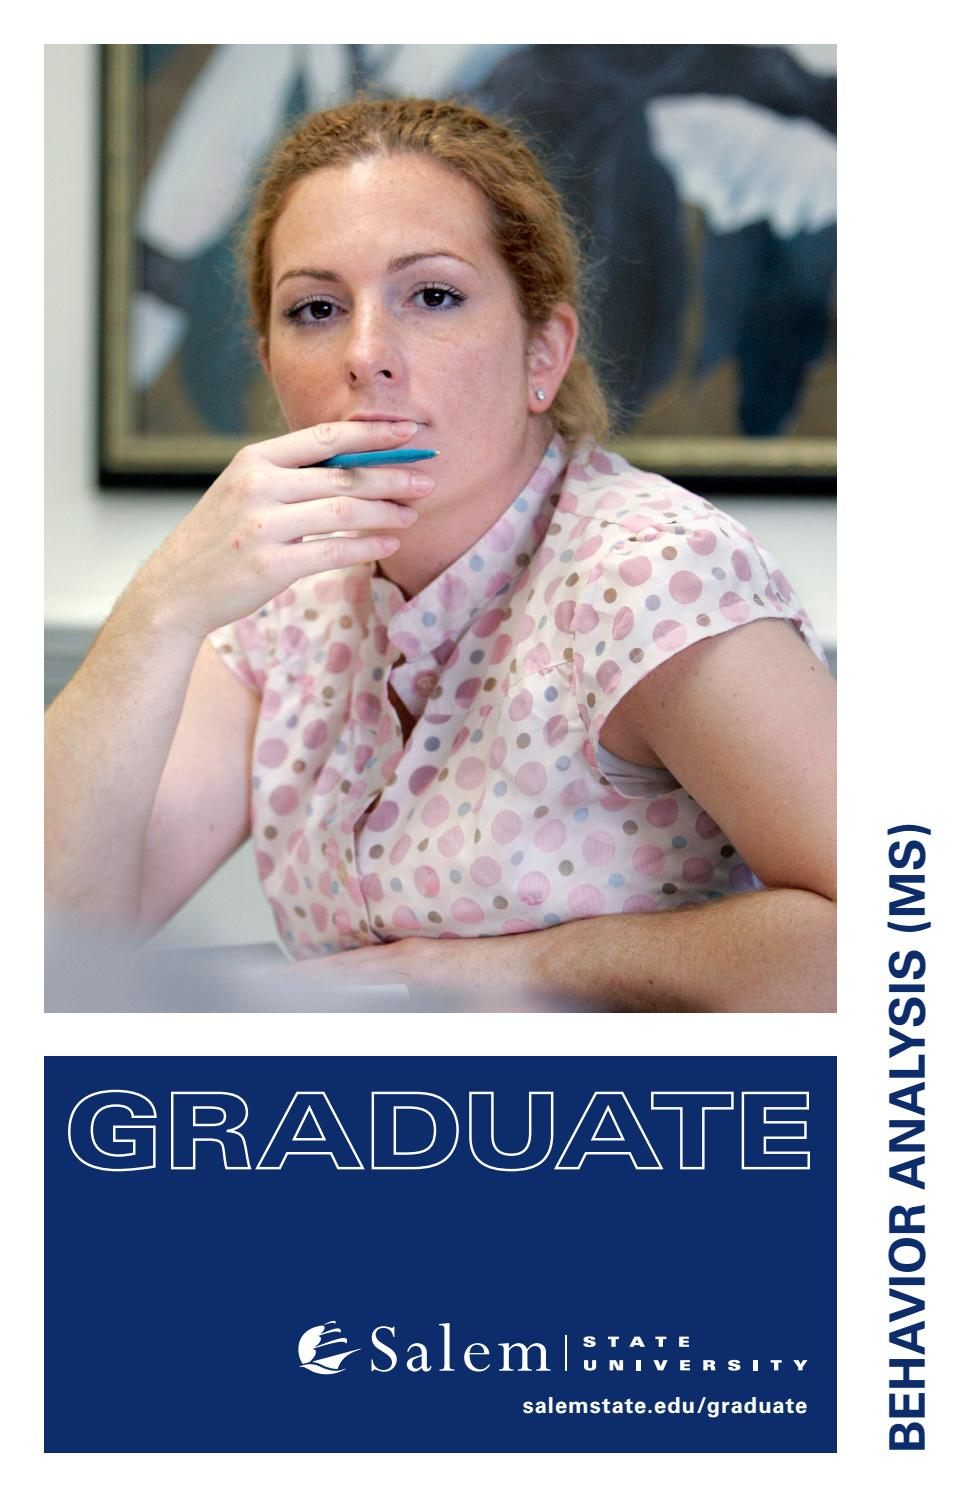 Master of Science Behavior Analysis (MS) by Salem State University